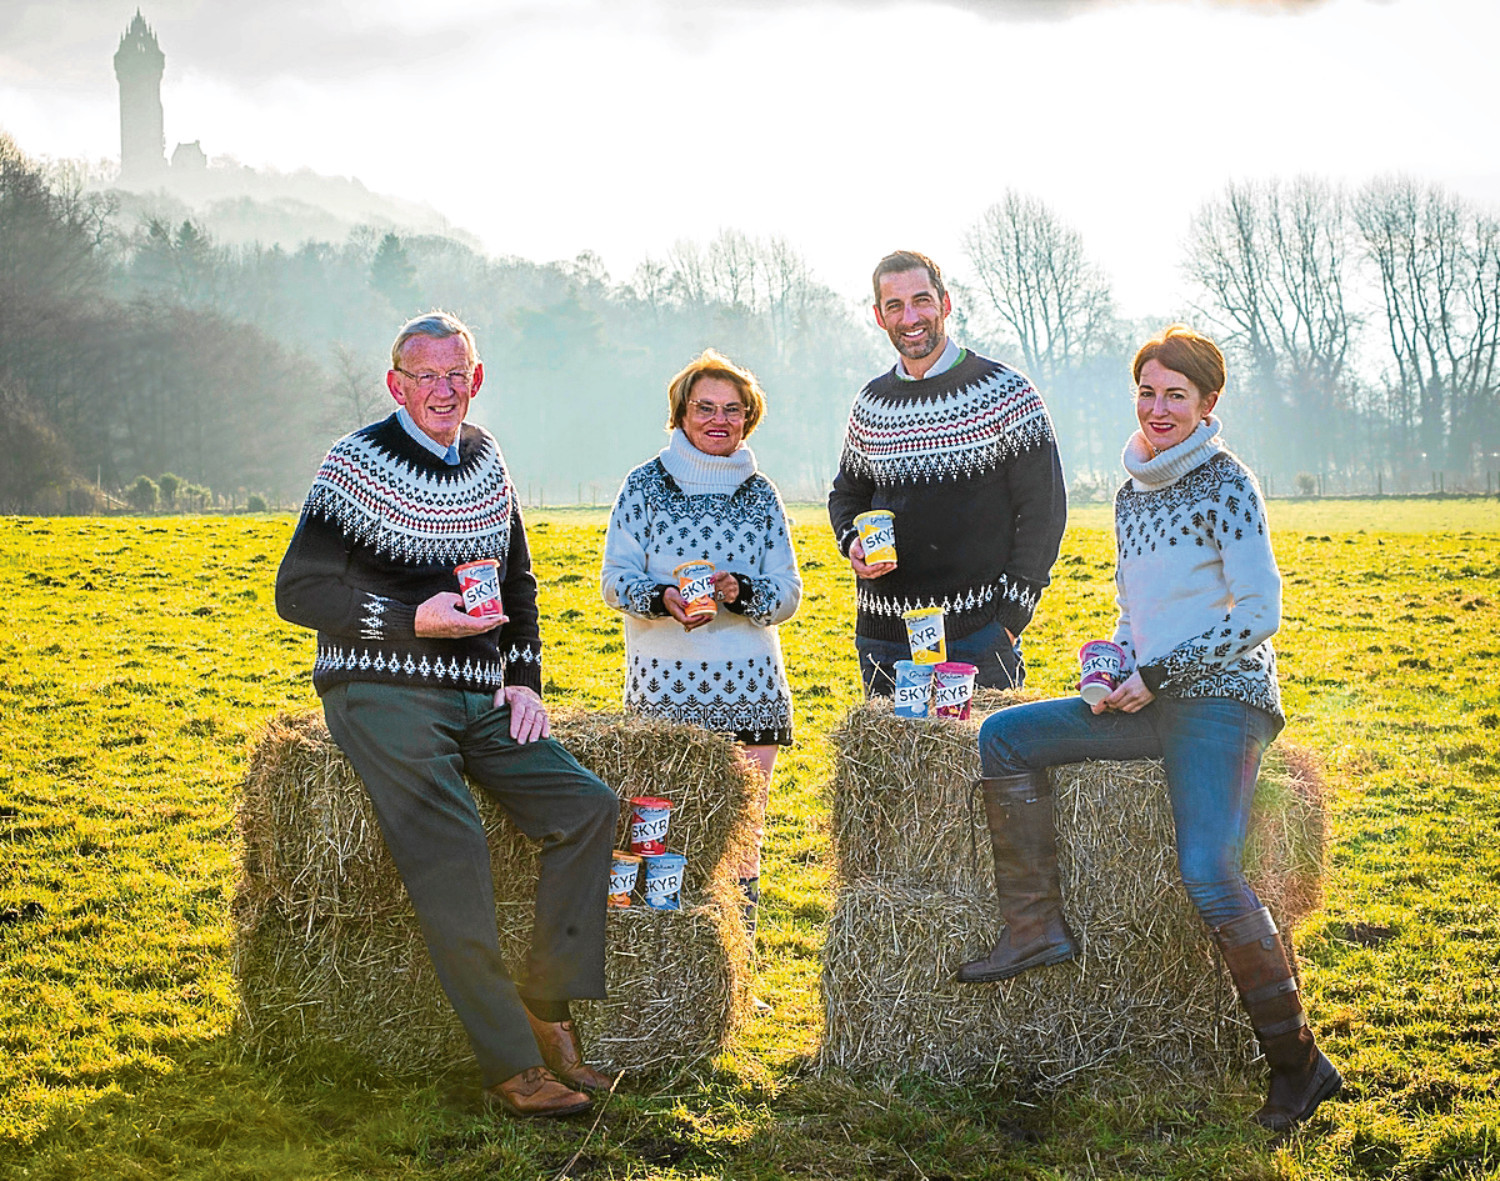 Robert Graham, his wife Jean, son Robert and daughter Carol launch Graham's The Family Dairy new Skyr product in style - with cosy Icelandic jumpers